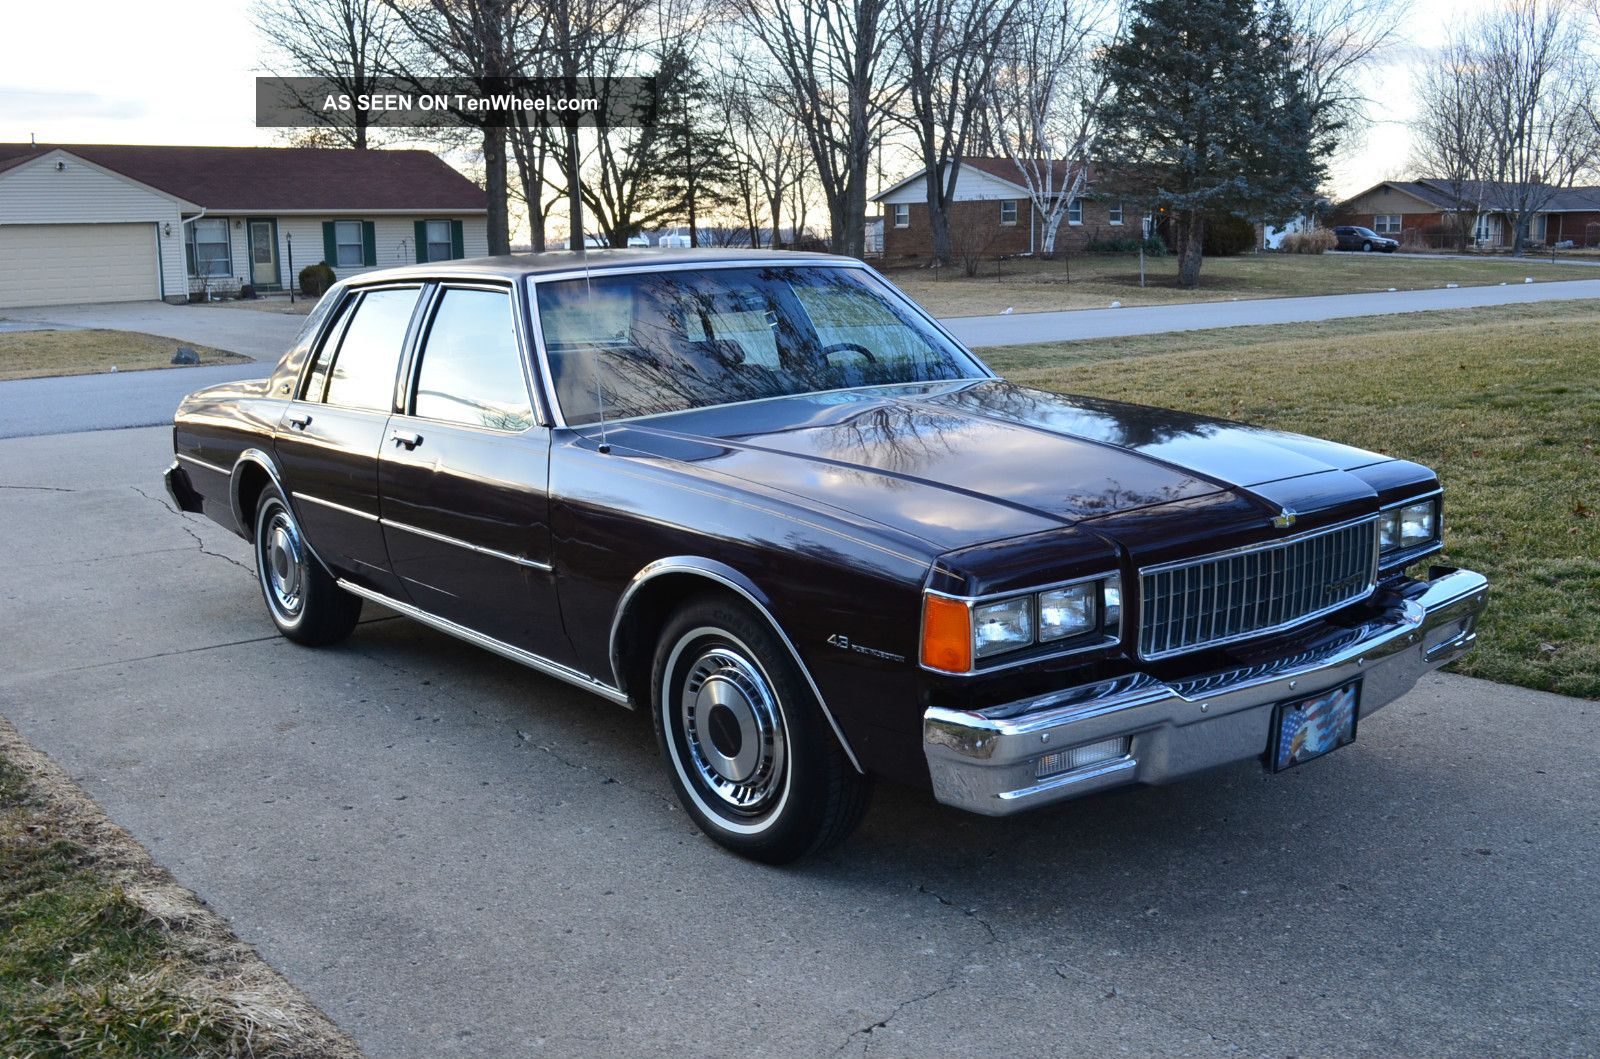 1985 chevrolet caprice classic information and photos momentcar. Black Bedroom Furniture Sets. Home Design Ideas